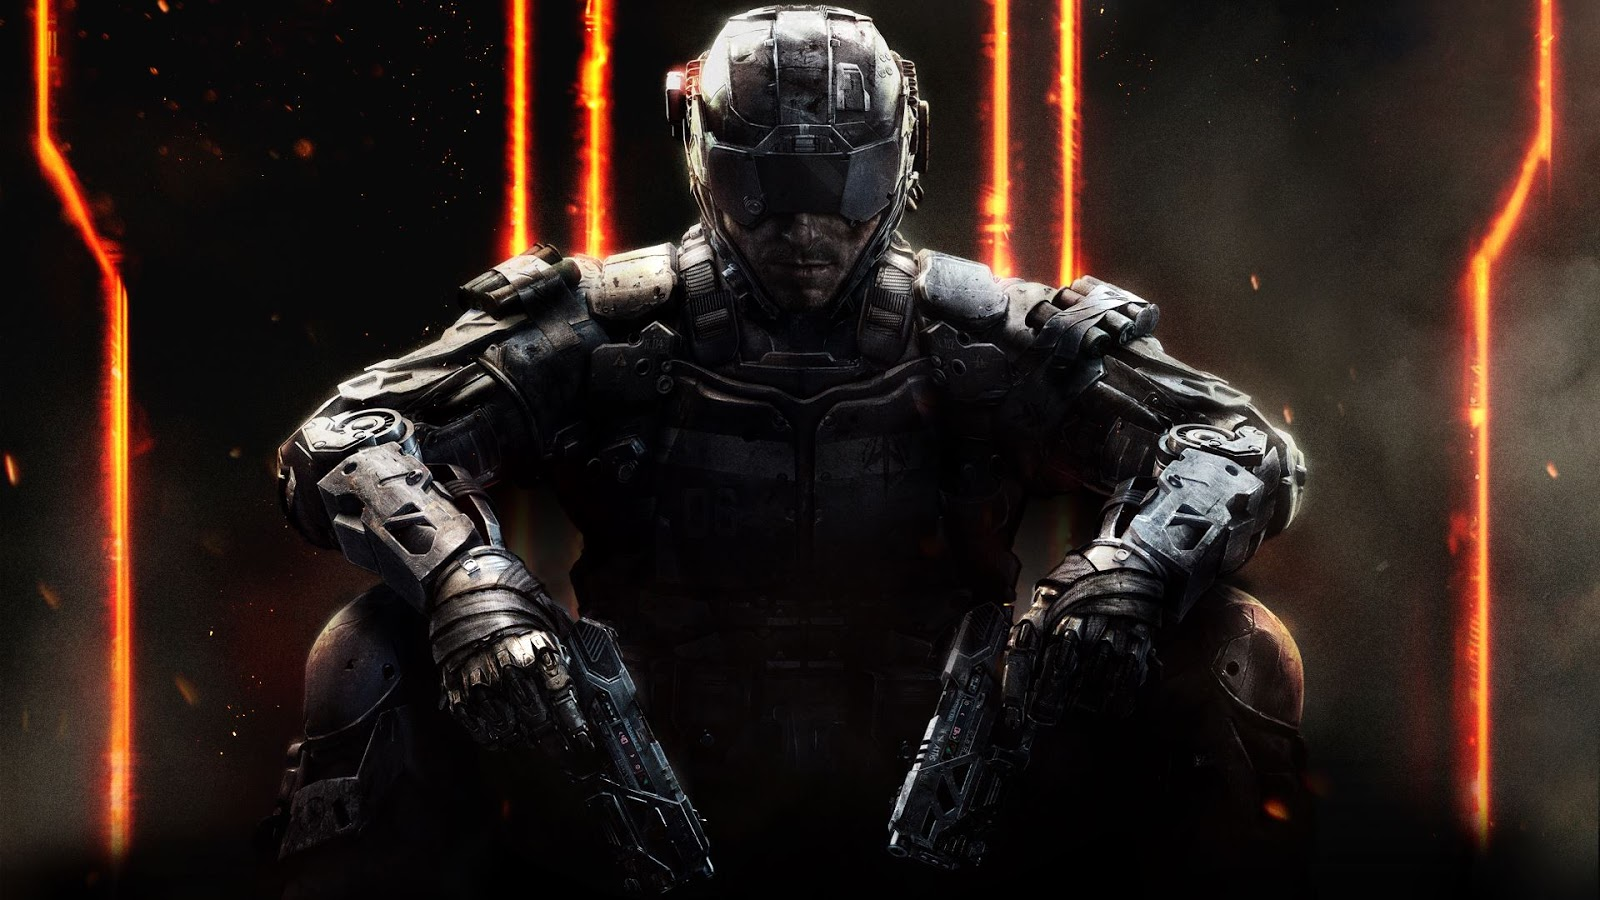 Black Ops 3 Awakening DLC gets Xbox One and PC release date